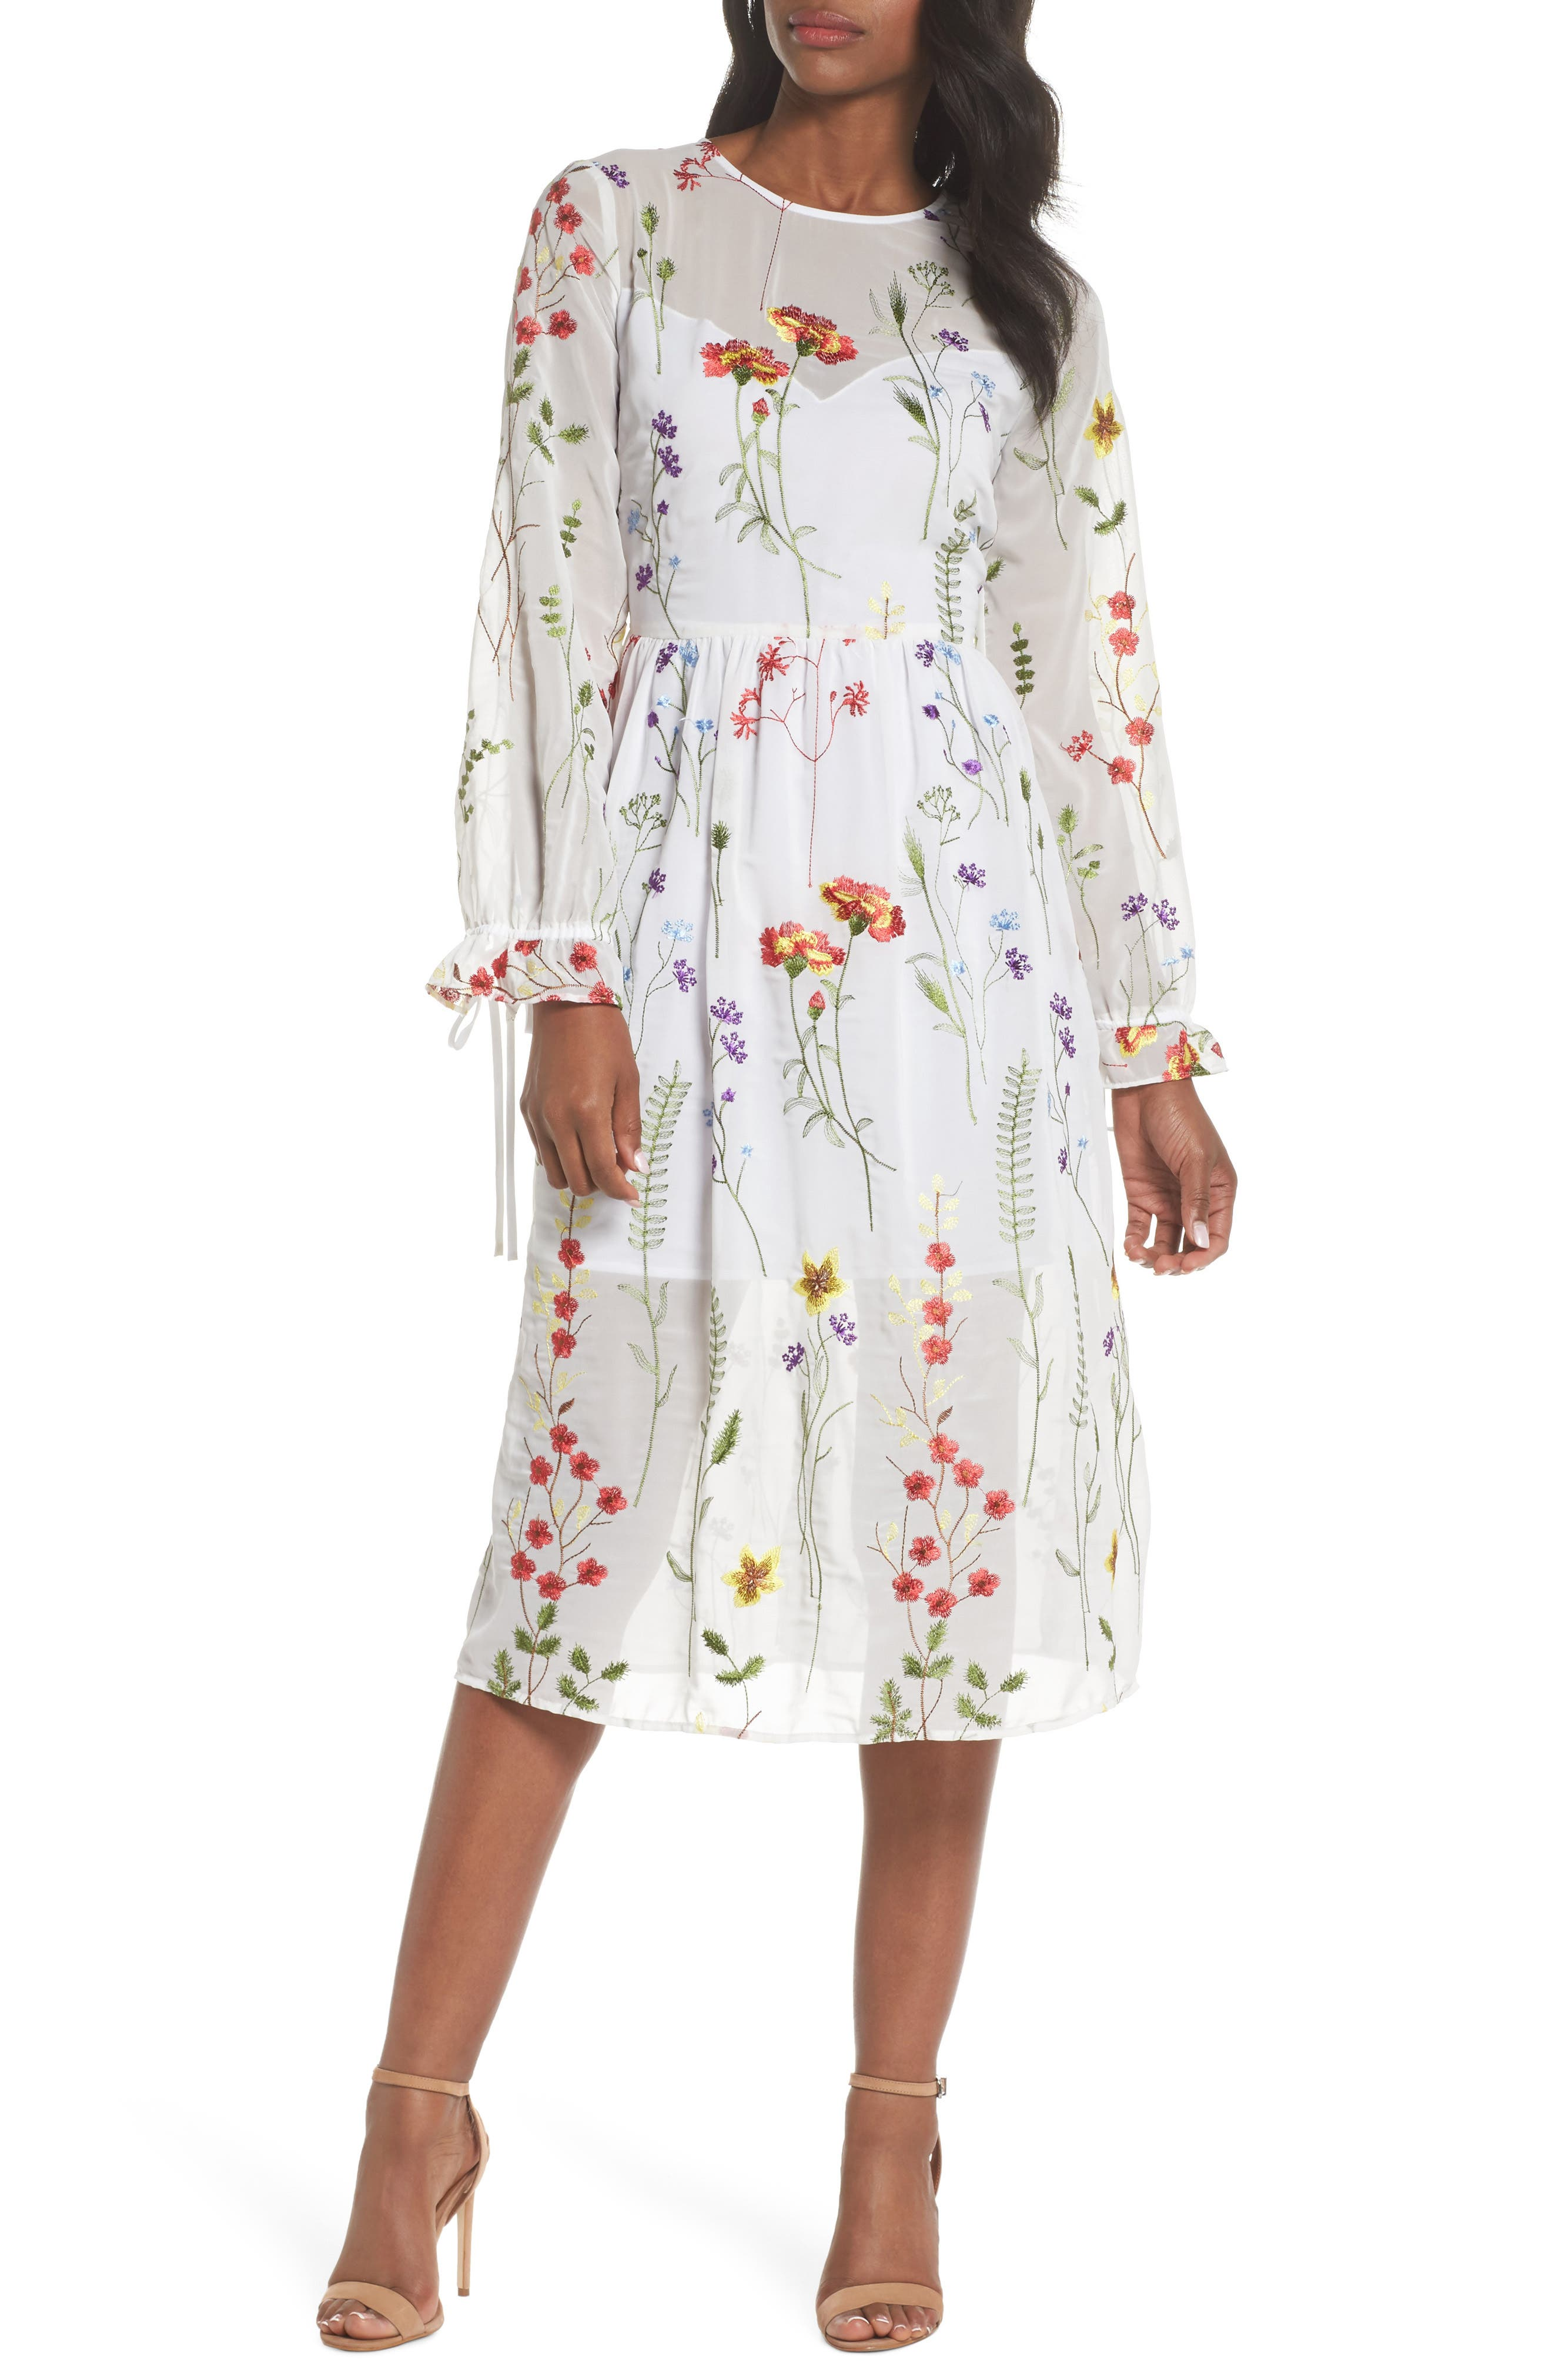 Incroyable Chelsea28 Sheer Embroidered Midi Dress